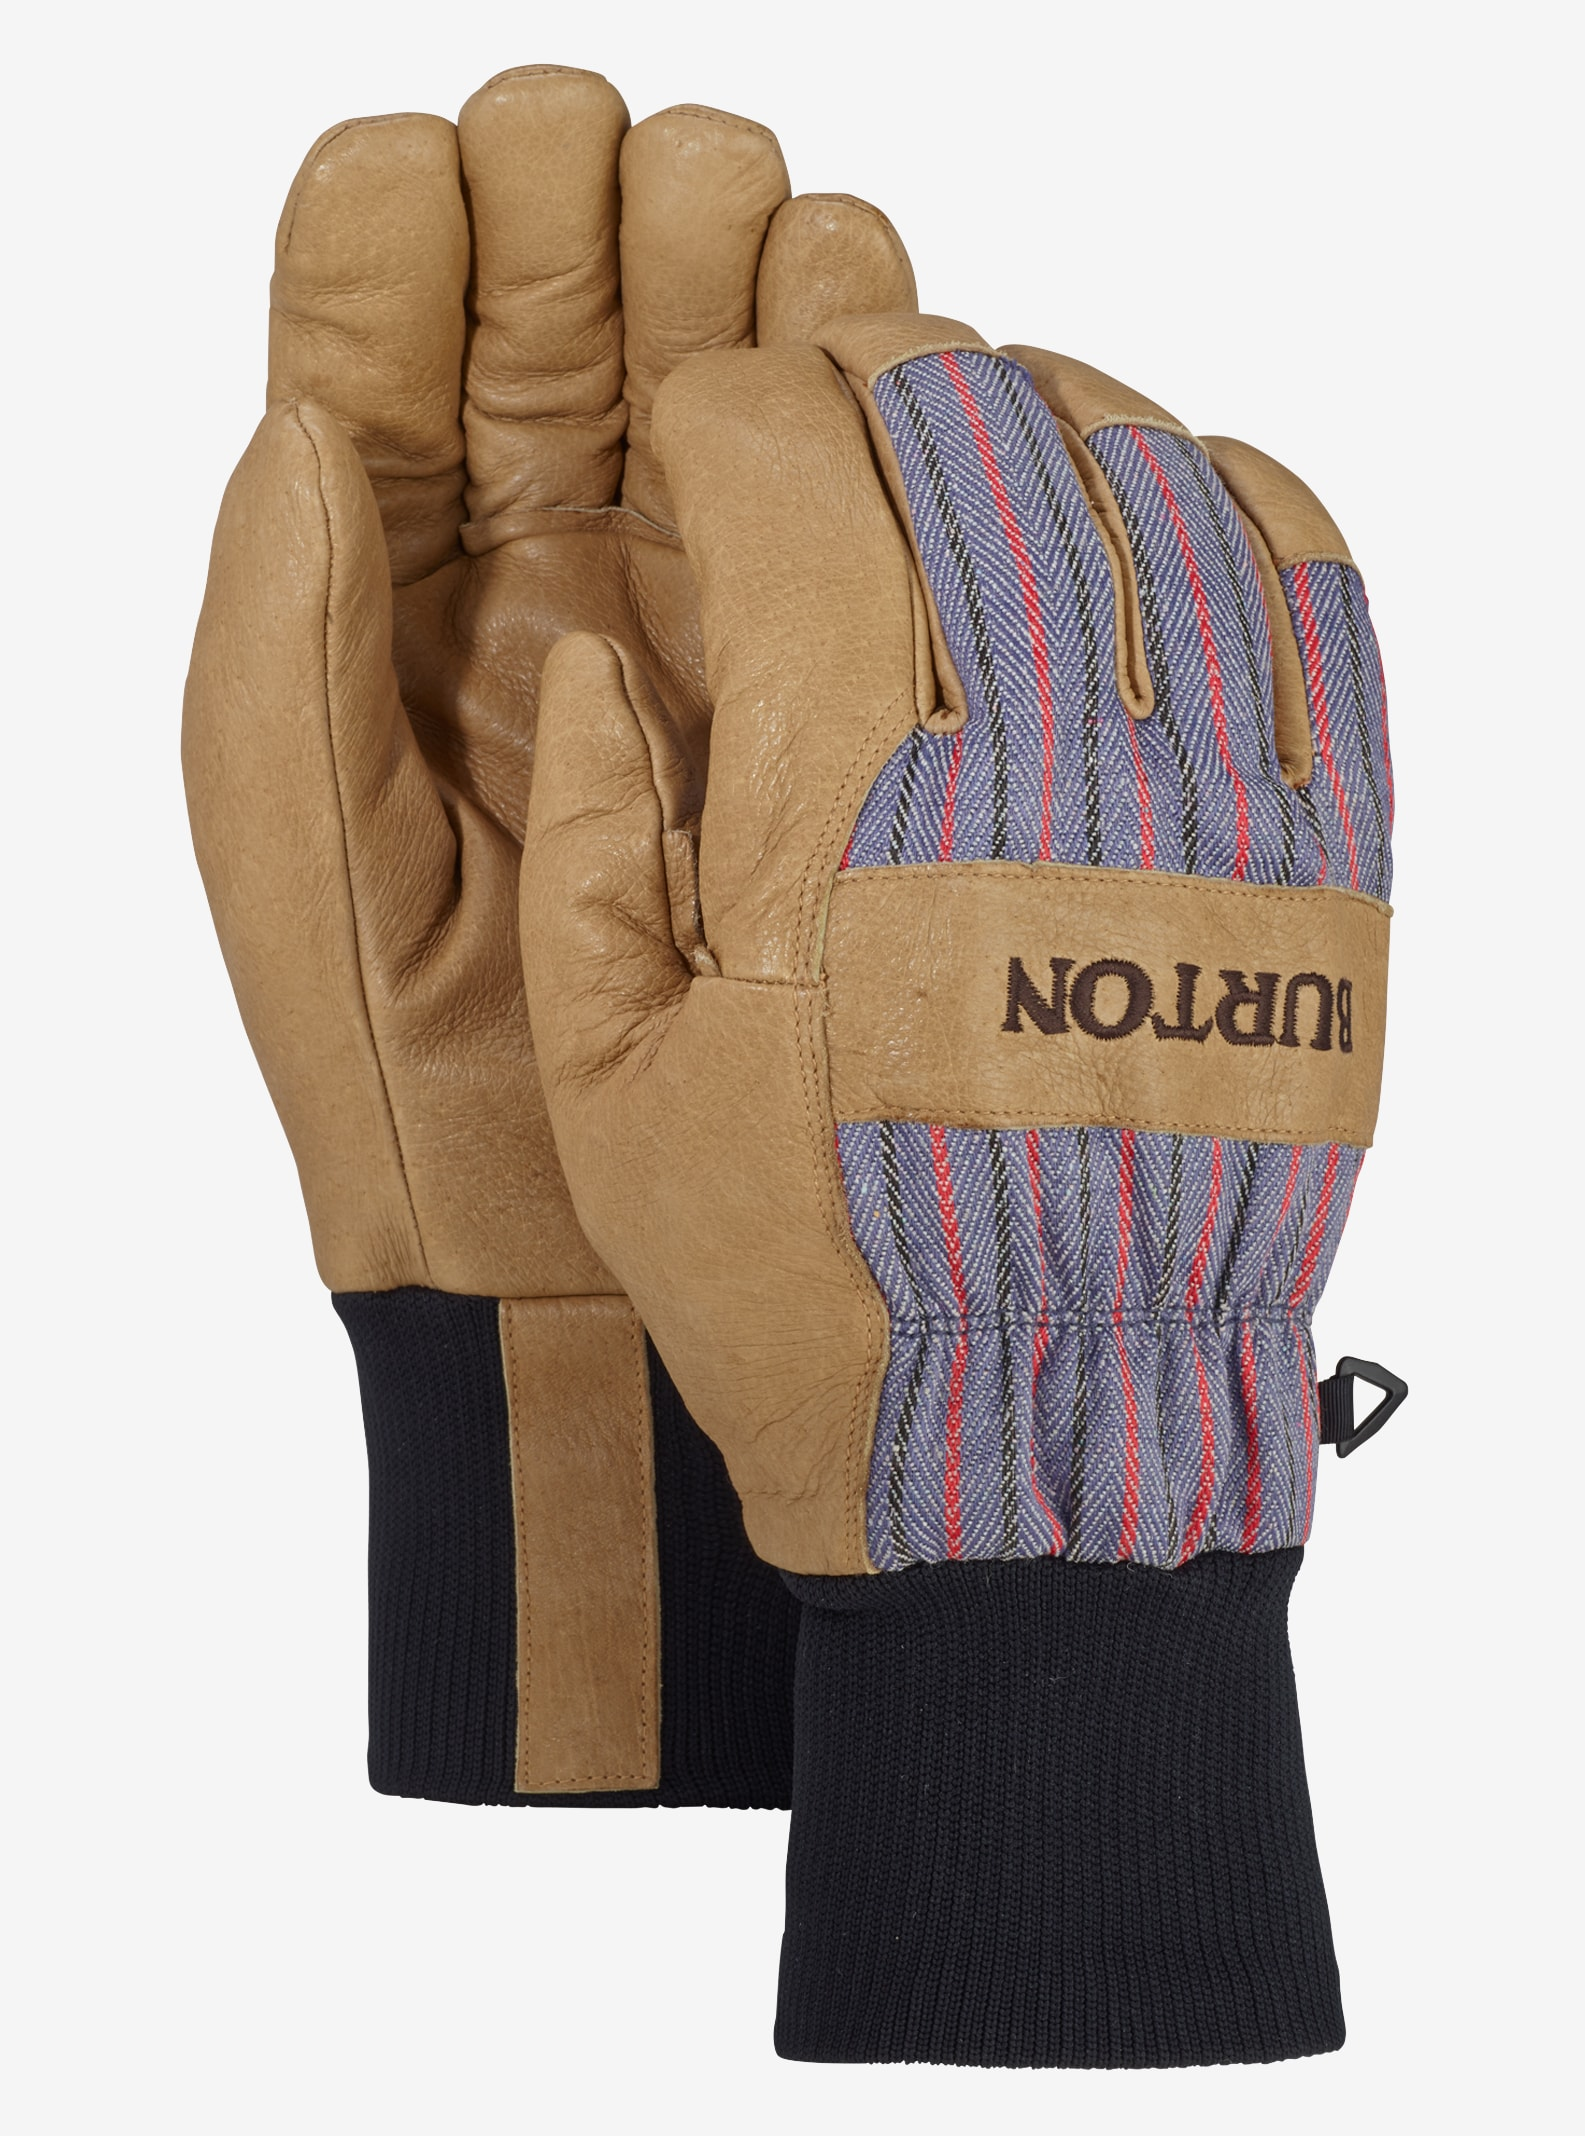 Men's Burton Lifty Glove shown in Raw Hide